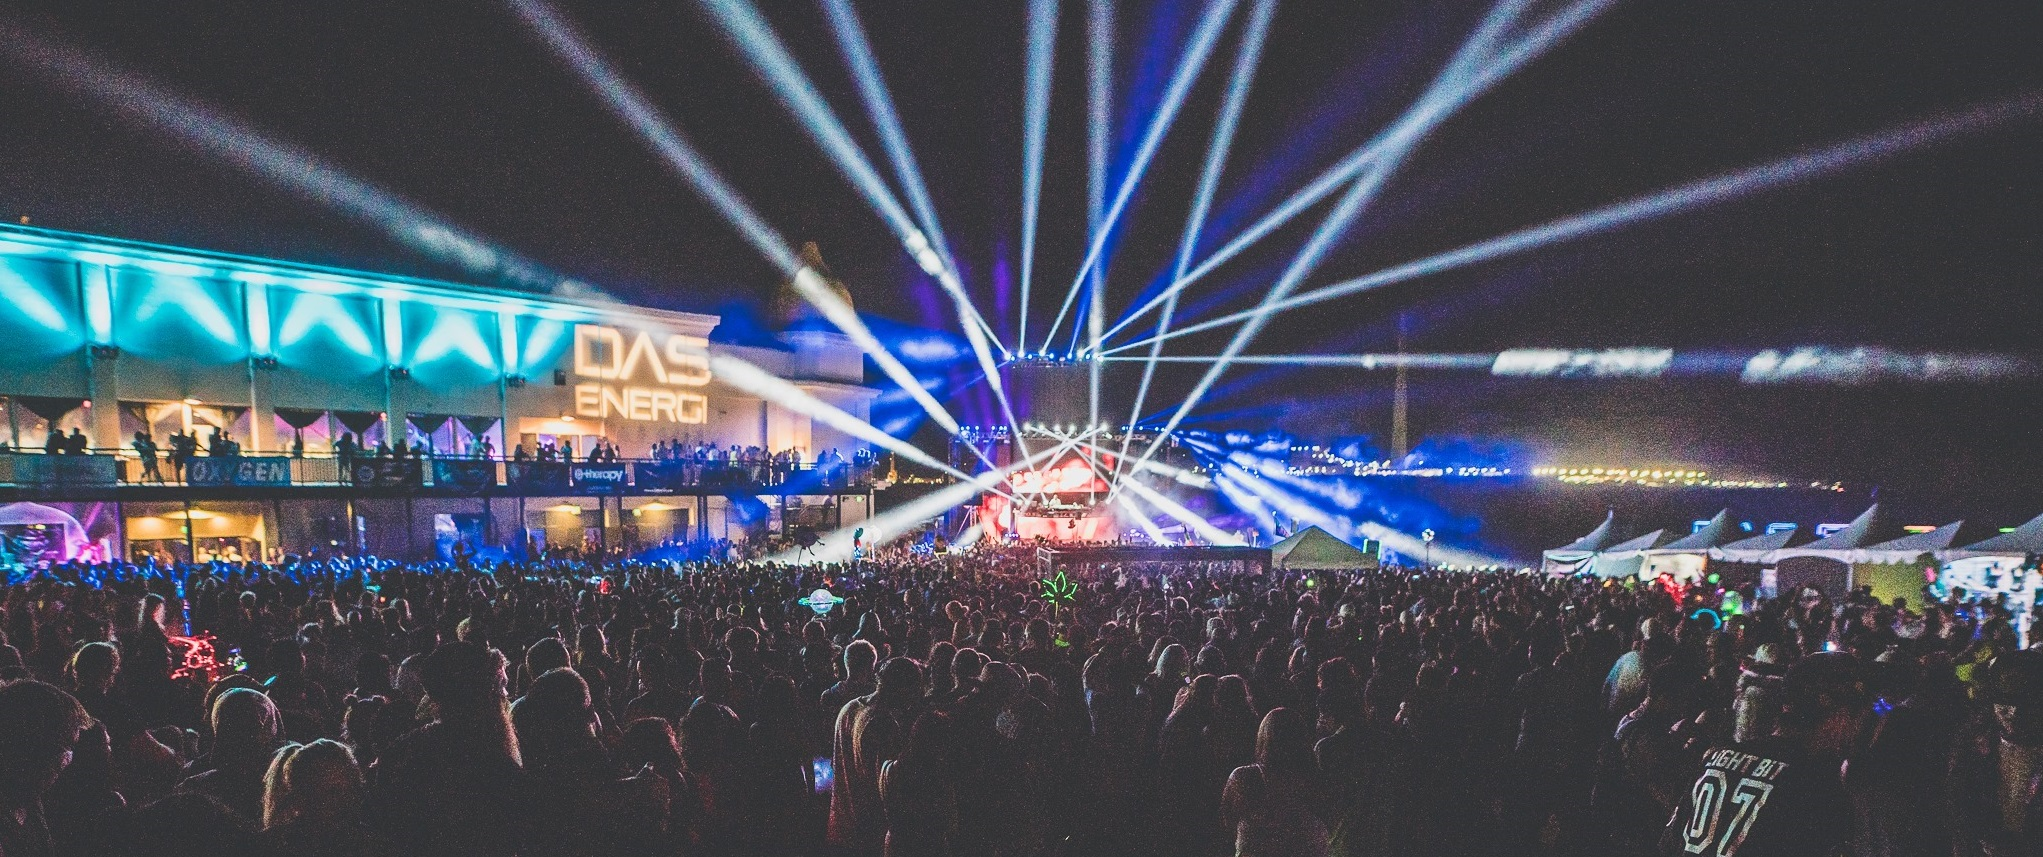 ULTRA MUSIC FESTIVAL PAYMENT PLAN FOR 2018 EVENT TERMS AND CONDITIONS